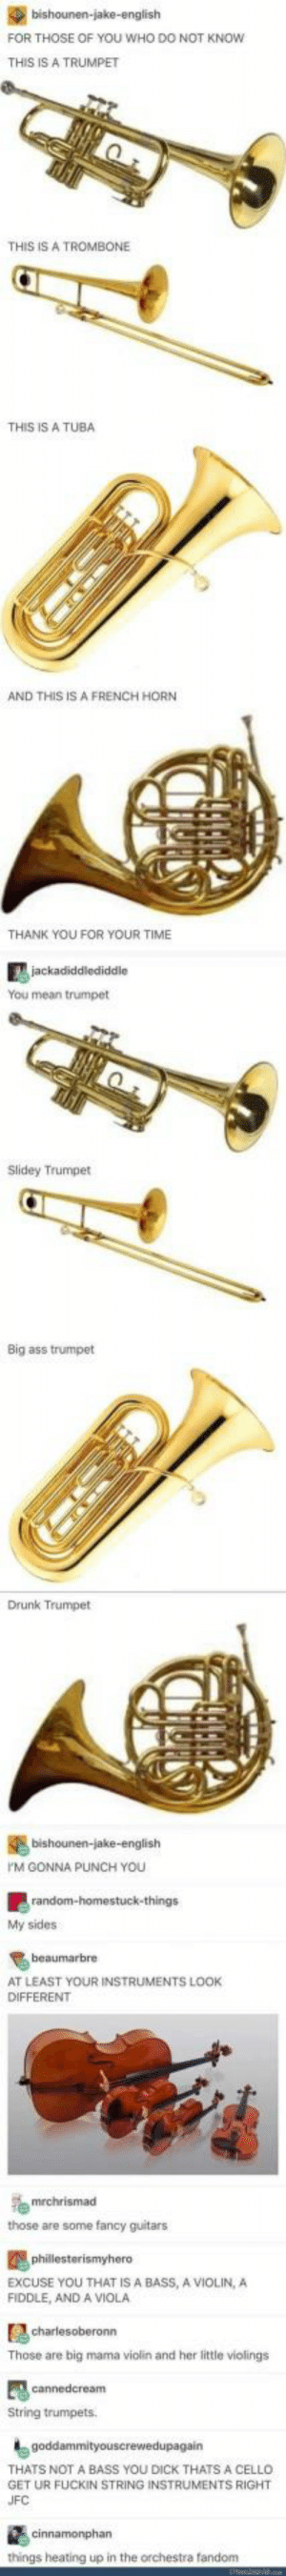 Instruments: FOR THOSE OF YOU WHO DO NOT KNOw  THIS IS A TRUMPET  THIS IS A TROMBONE  THIS IS A TUBA  AND THIS IS A FRENCH HORN  THANK YOU FOR YOUR TIME  You mean trumpet  Slidey Trumpet  Big ass trumpet  Drunk Trumpet  M GONNA PUNCH YOU  My sides  AT LEAST YOUR INSTRUMENTS LOOK  DIFFERENT  those are some fancy guitars  EXCUSE YOU THAT IS A BASS, A VIOLIN,A  FIDDLE, AND A VIOLA  Those are big mama violin and her little violings  String trumpets  THATS NOT A BASS YOU DICK THATS A CELLO  GET UR FUCKIN STRING INSTRUMENTS RIGHT  things heating up in the orchestra fandom Instruments